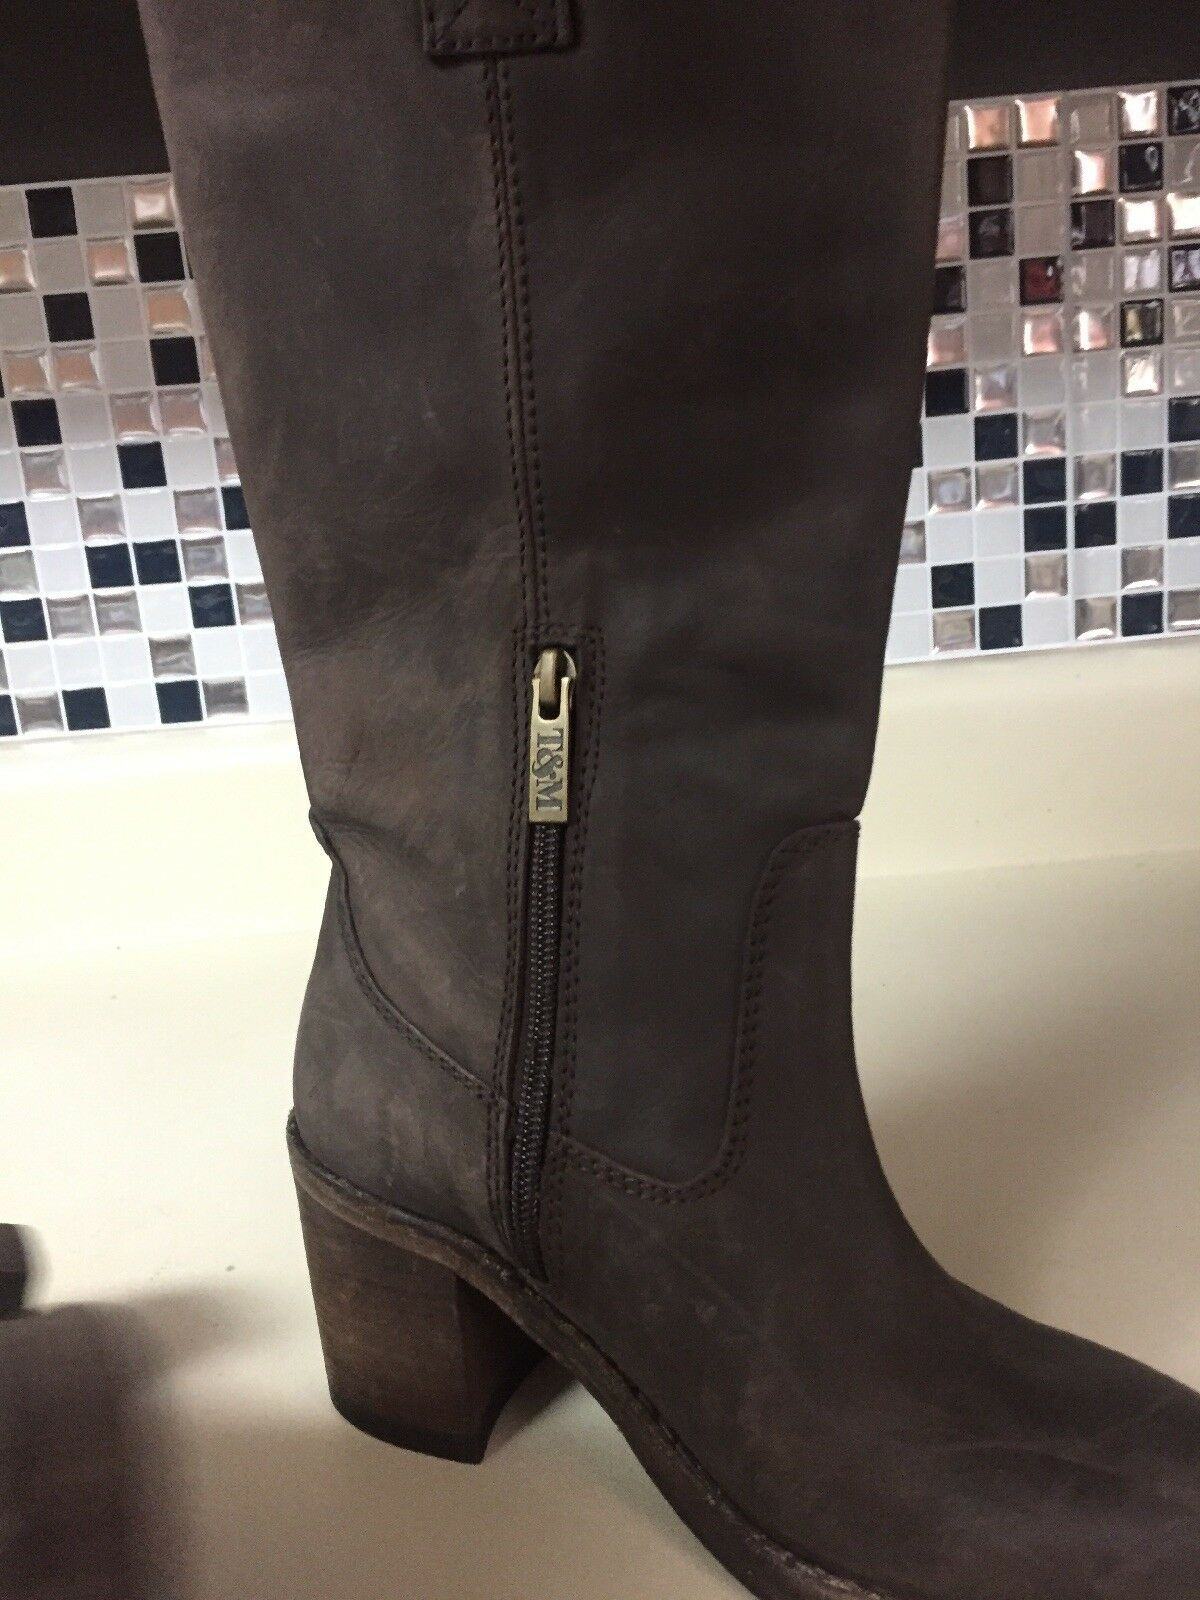 Ted Ted Ted and Muffy Tall Stiefel braun Größe 35 US 5 Nubuck Leather 730b68